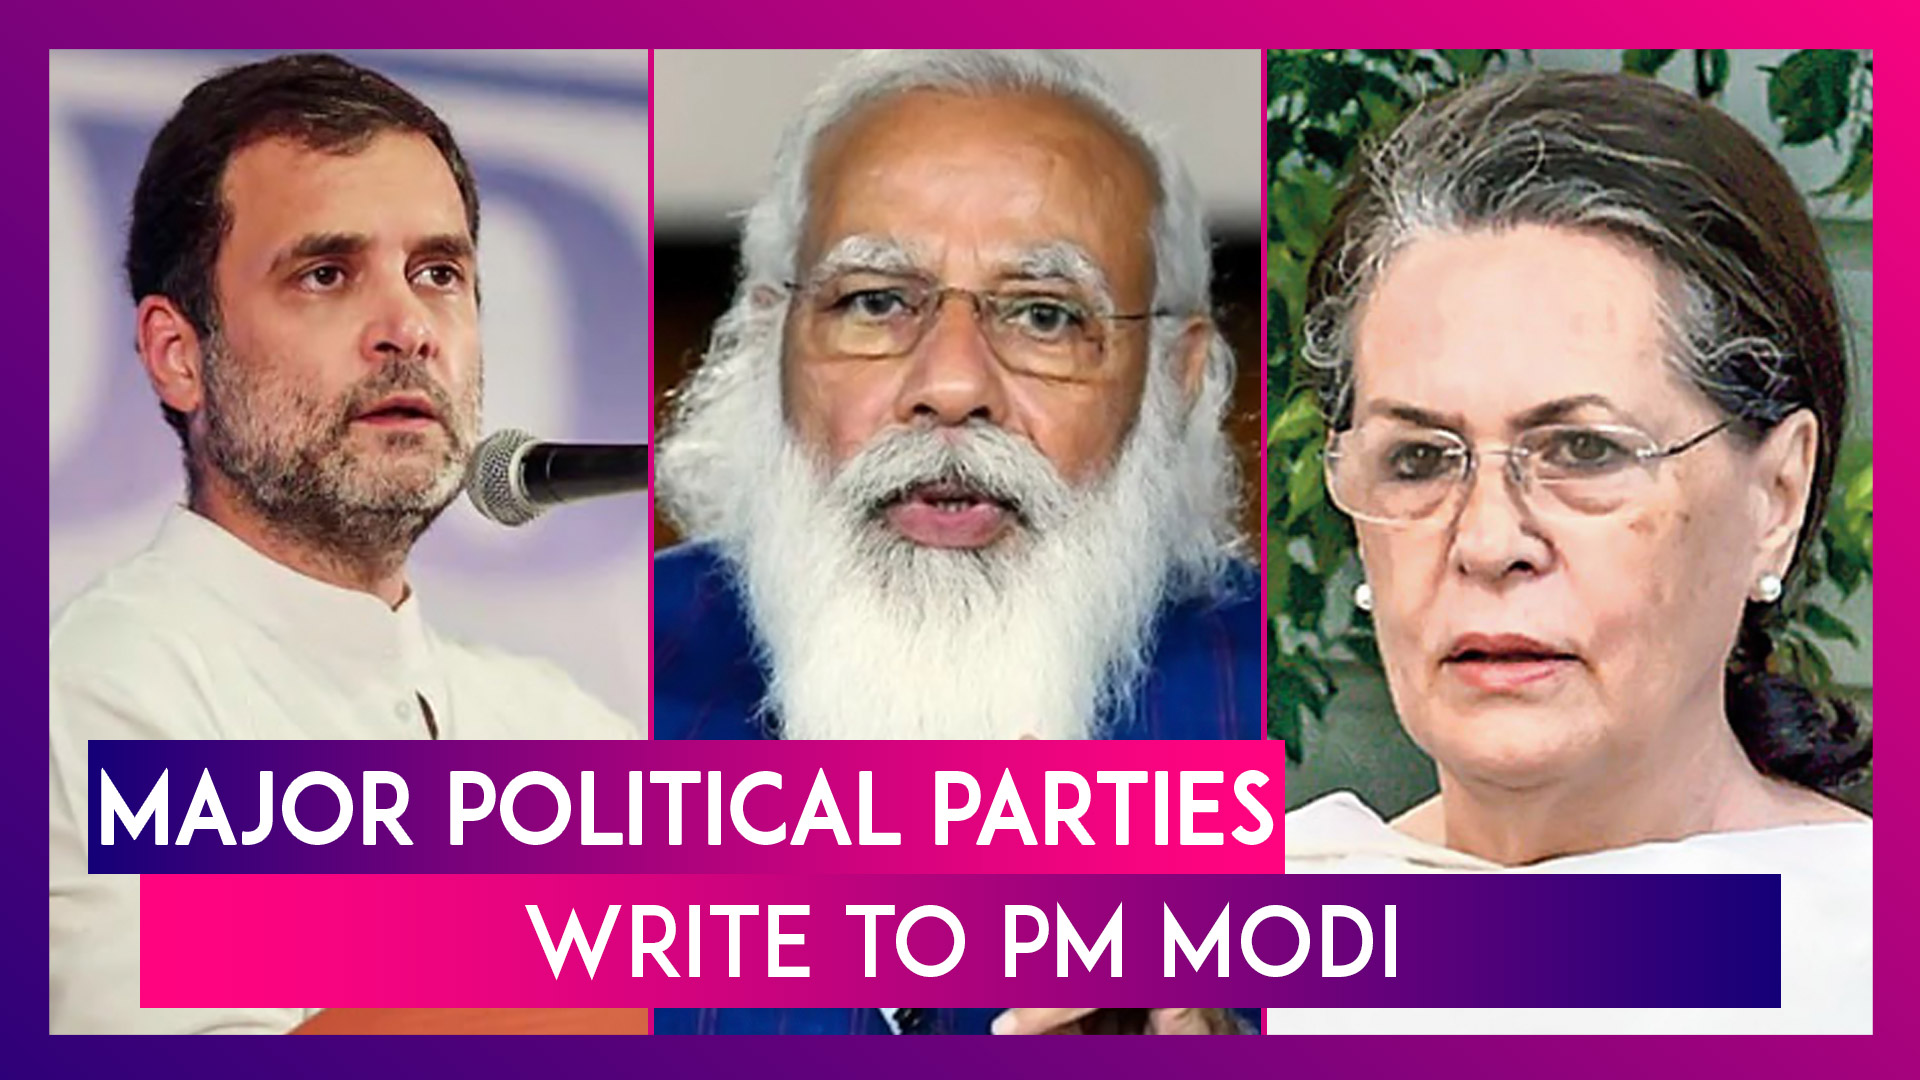 Major Political Parties Write To PM Narendra Modi With Suggestions To Control Second Covid-19 Surge